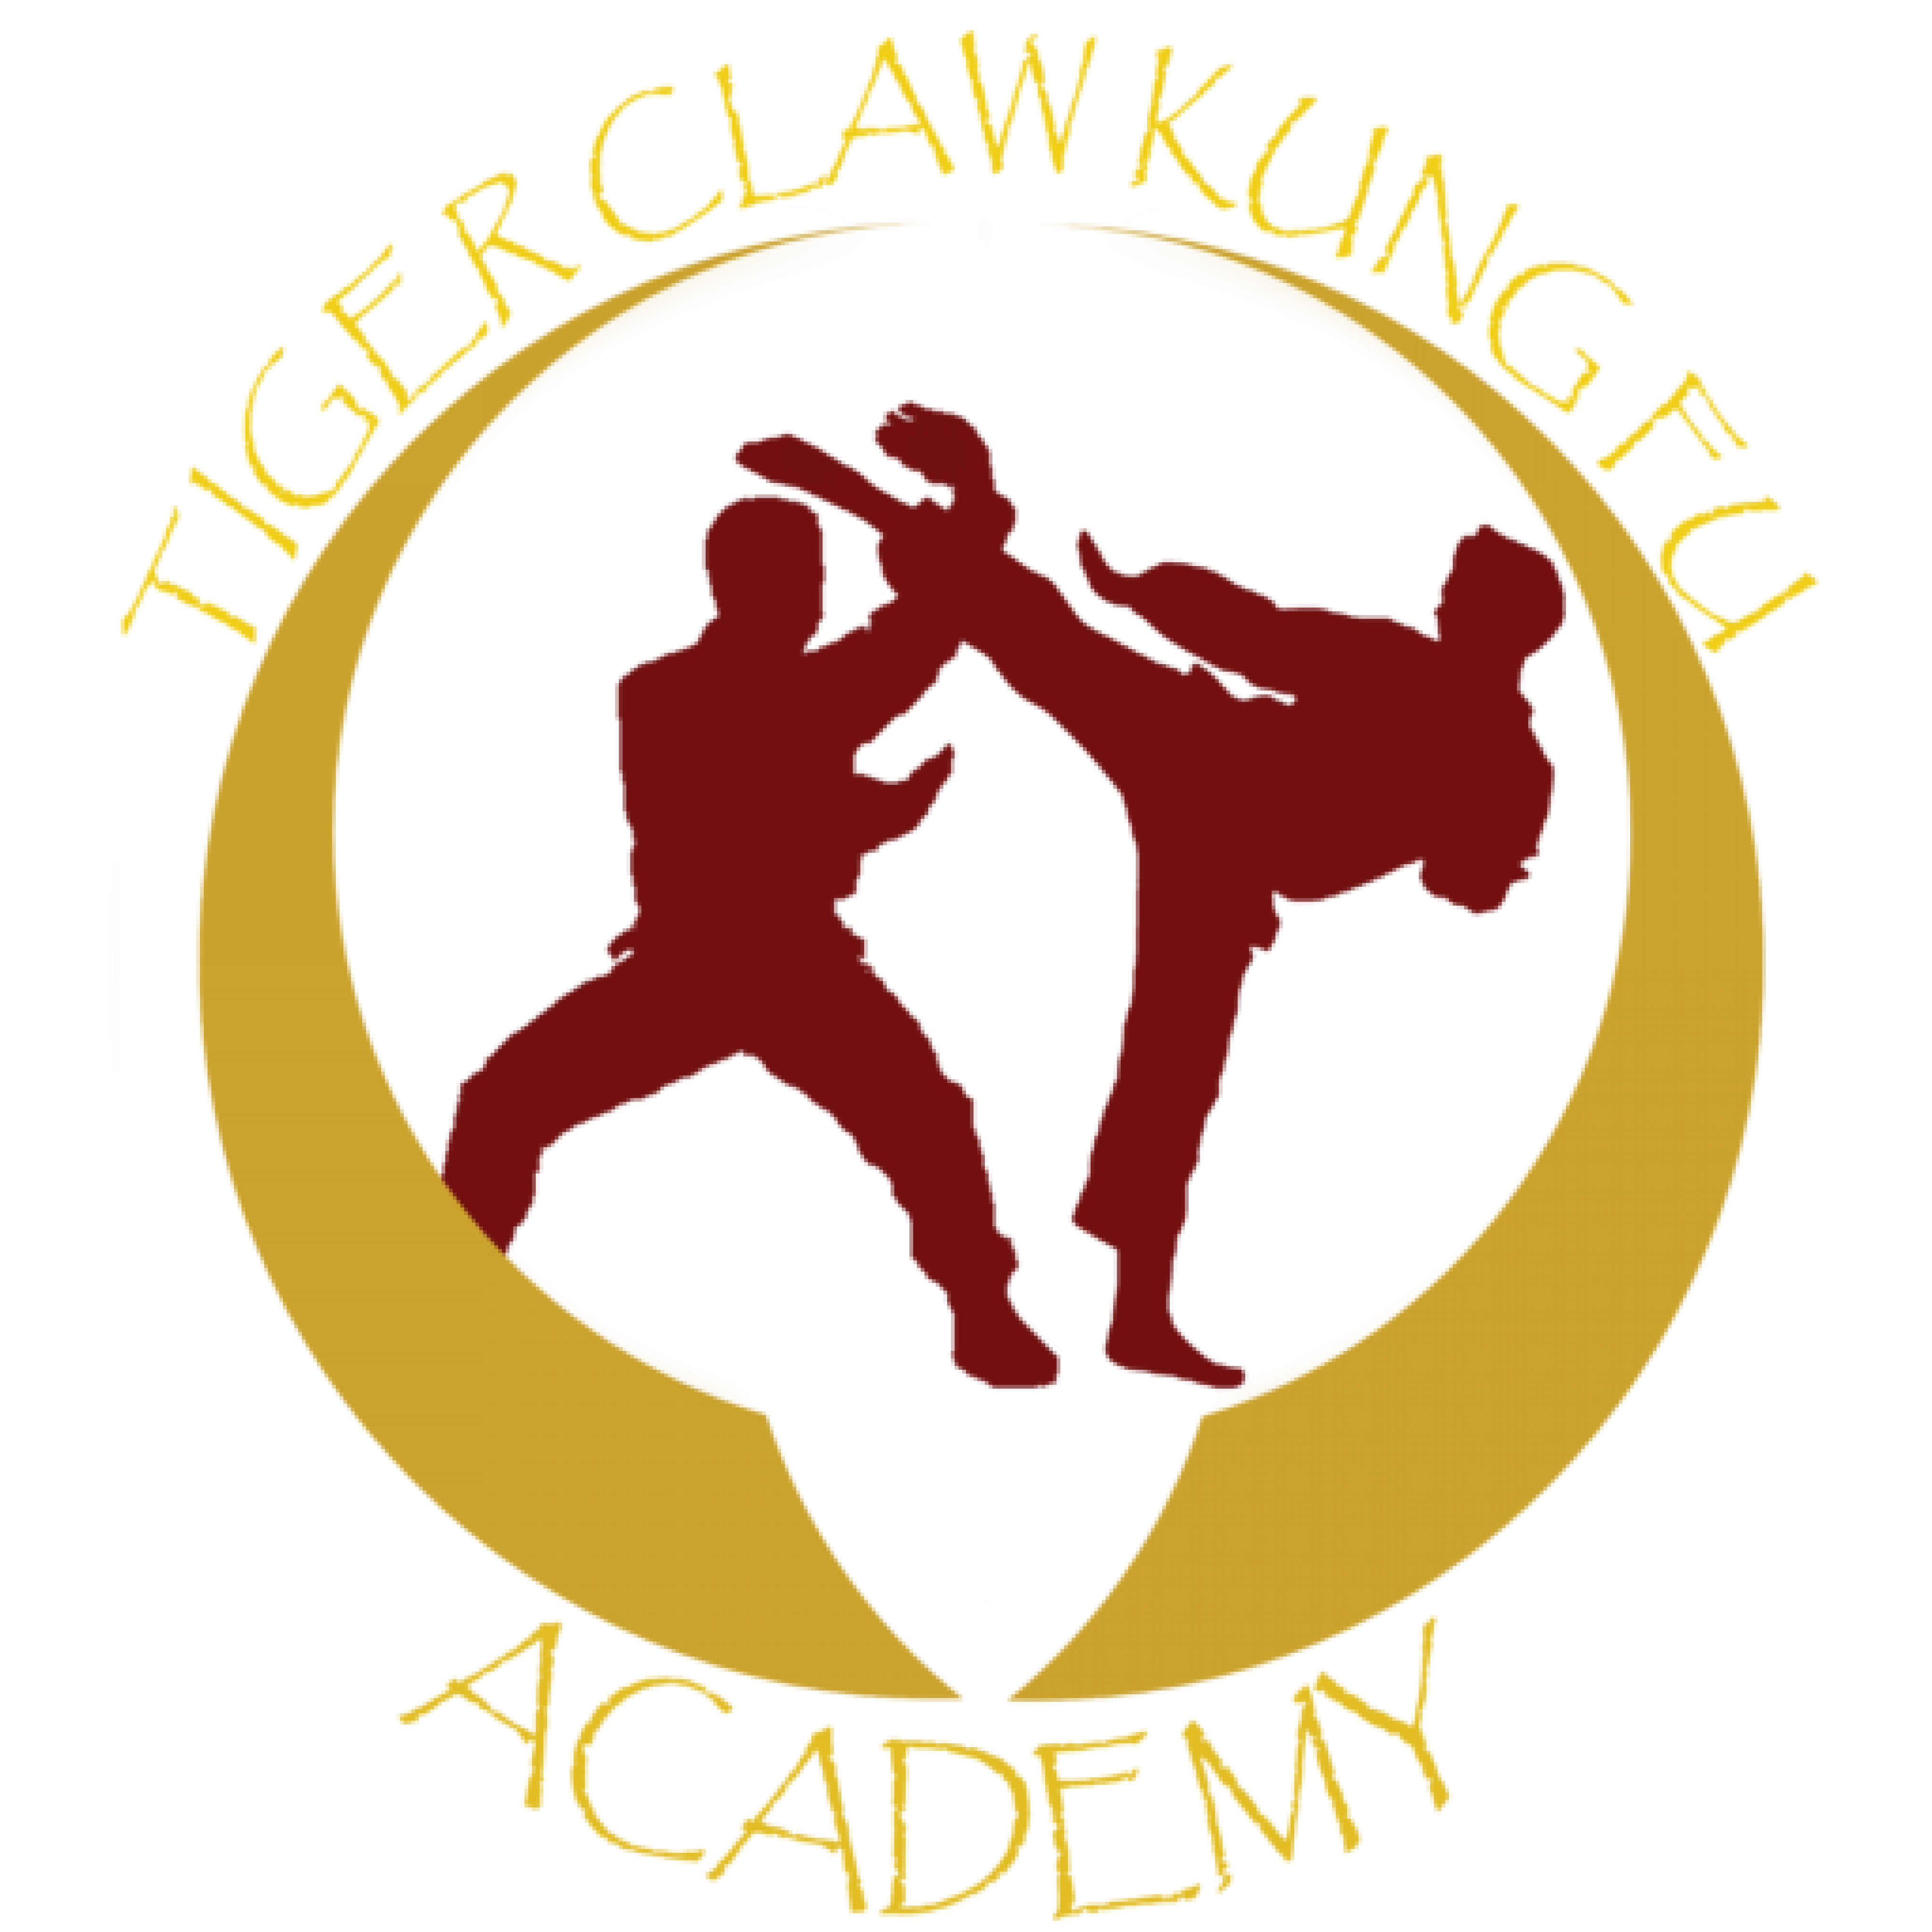 cropped-cropped-TCKFA-LOGO-300-RESOLUTION-1.png